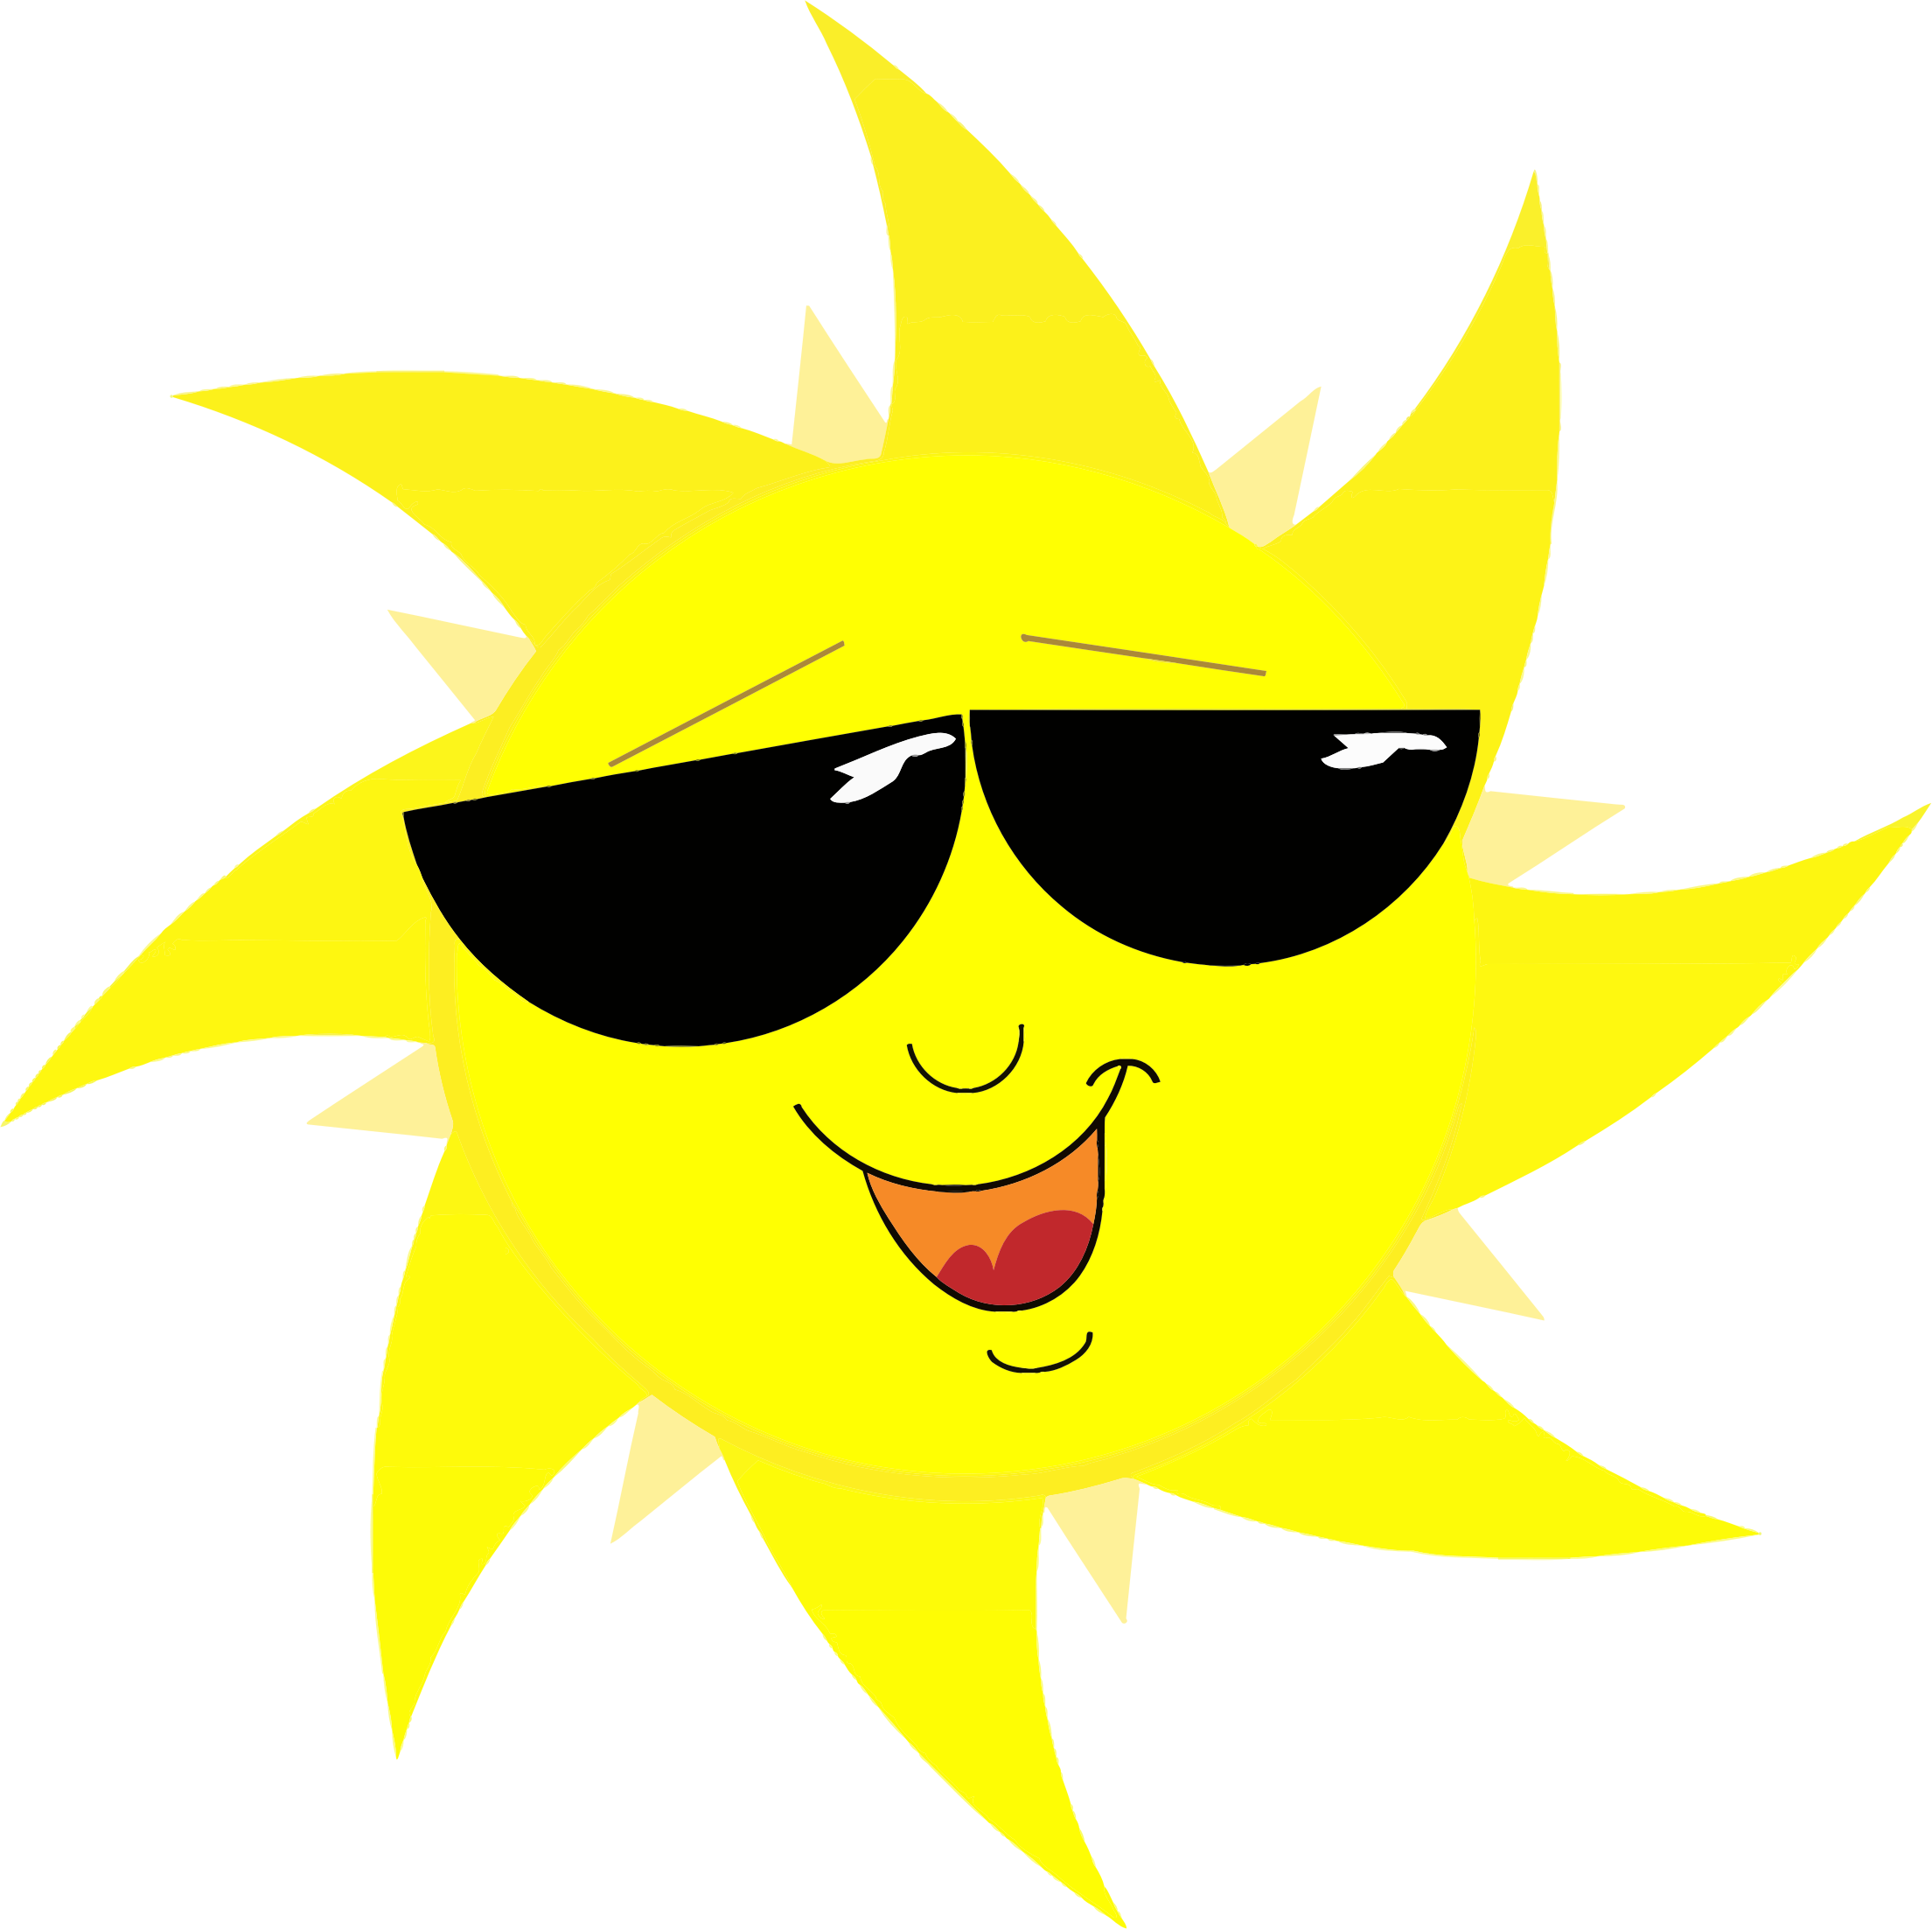 Smiling Sun With Sunglasses by GDJ